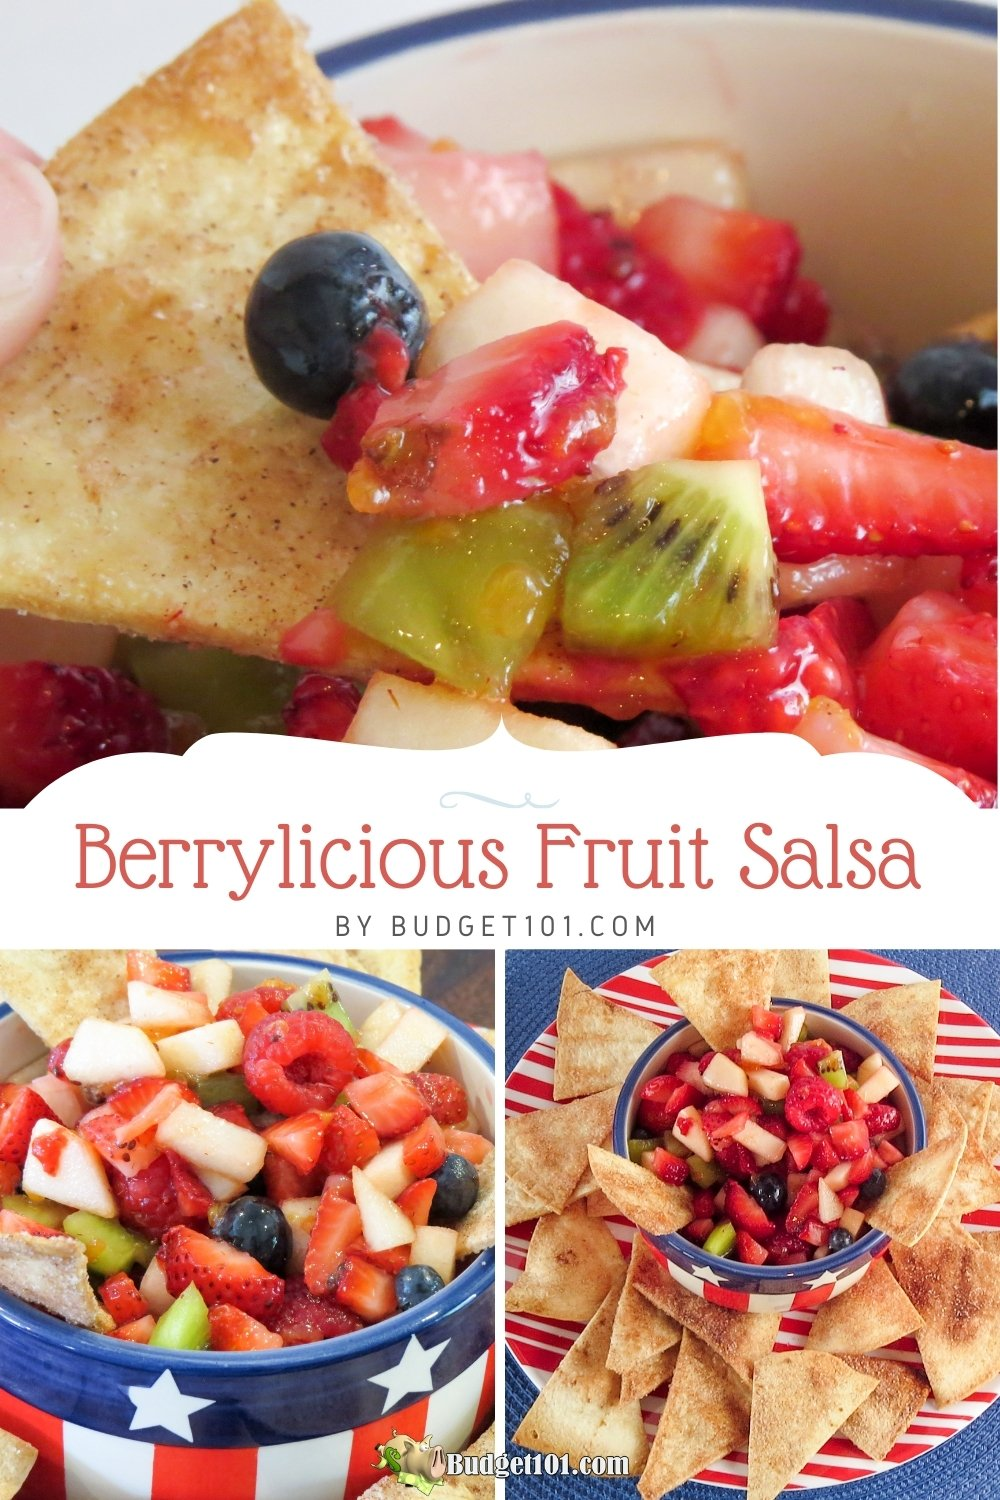 berrylicious fruit salsa loaded with strawberries, raspberries, blueberries, kiwi & apple with just the right amount of sweetness to bring it all together, served with cinnamon tortilla chips #Budget101 #DirtCheap #Potluck #PotluckRecipes #Summertime